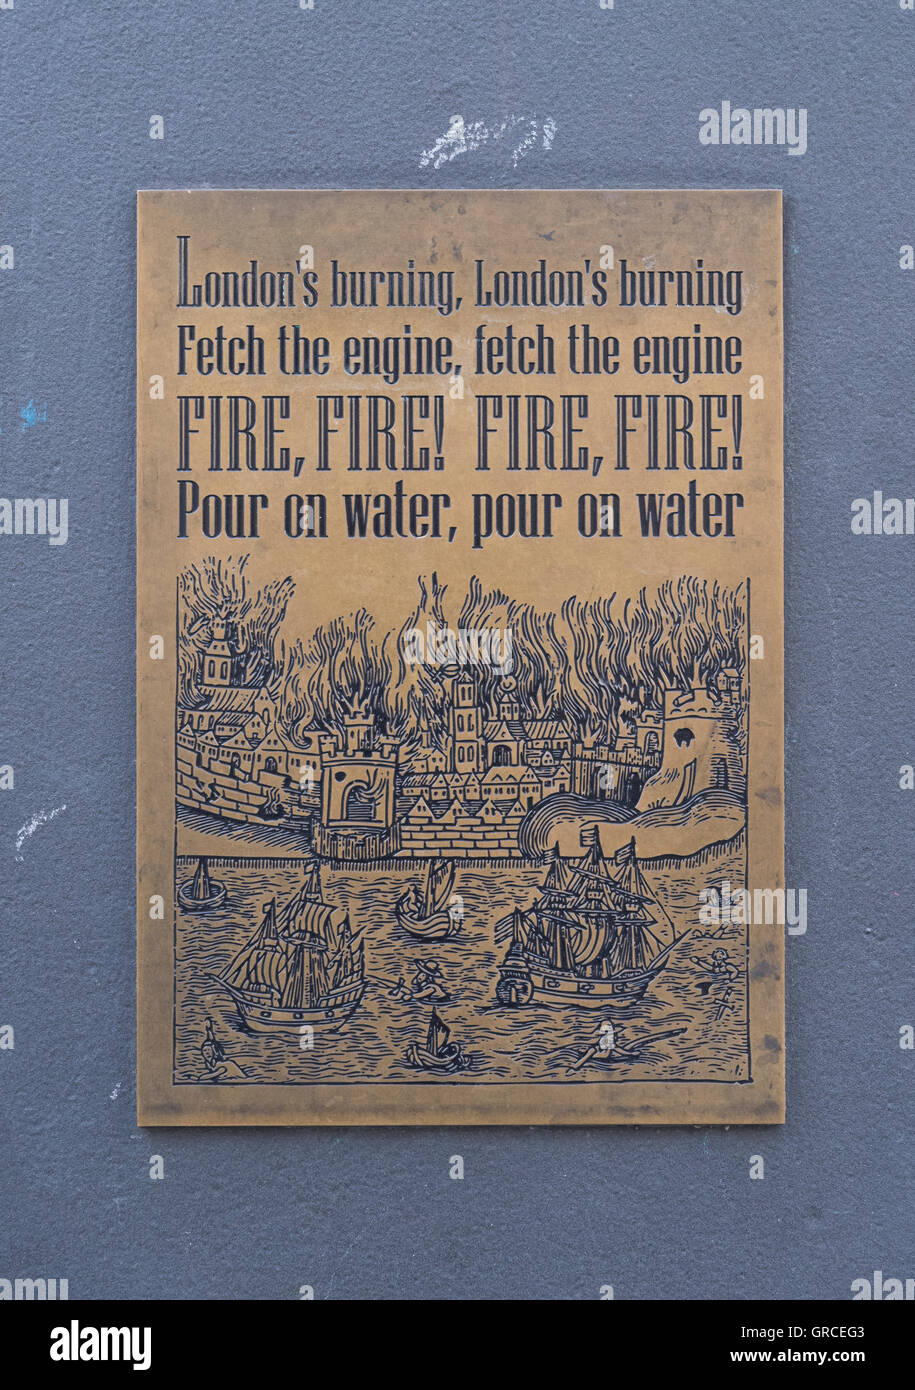 Plaque in the City of London, commemorates the Great Fire of London - Stock Image